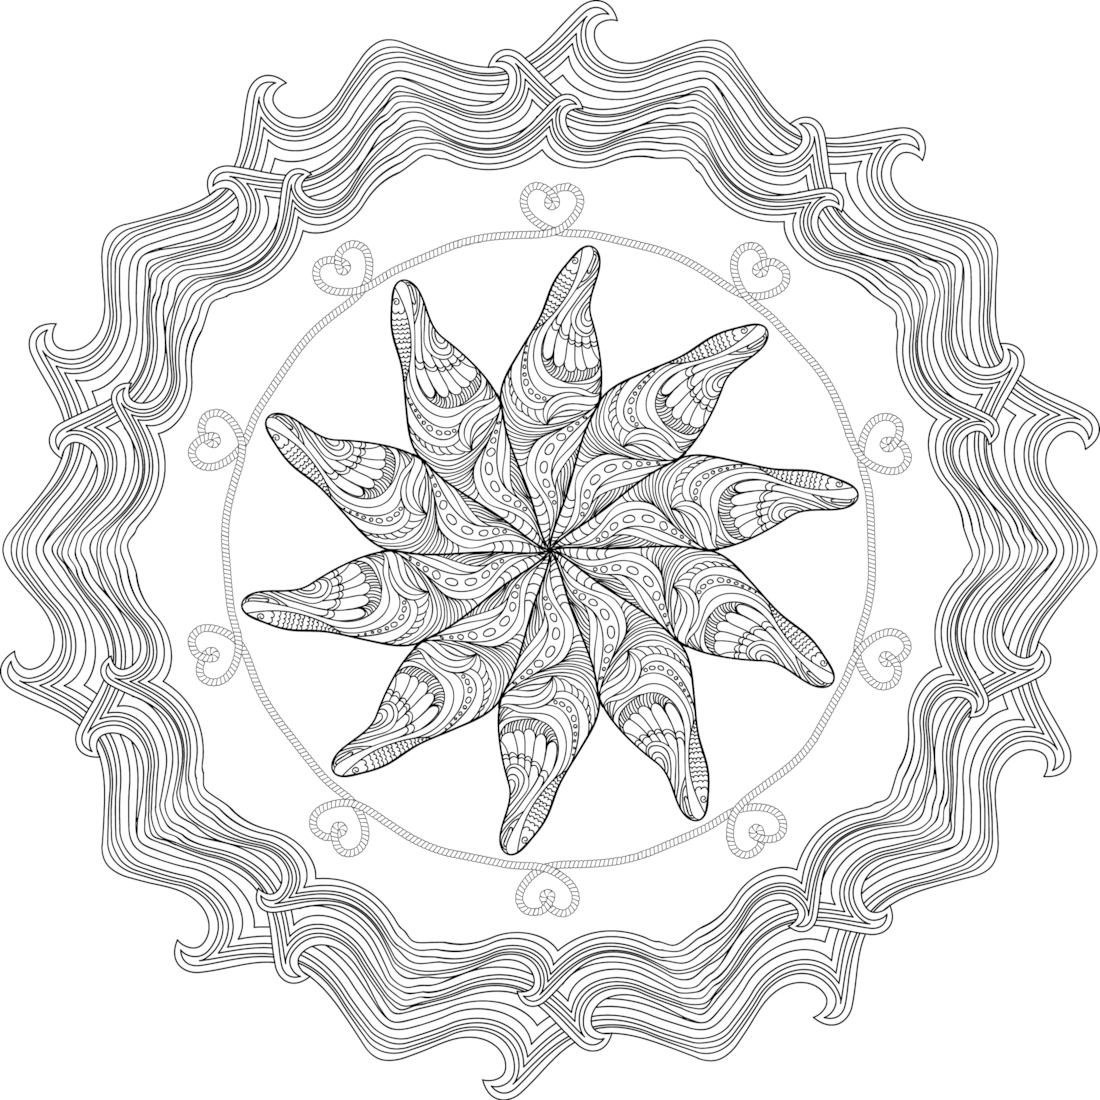 Cintamani Is A Jewel That Appears In Buddhism And Hinduism It S Said That The Cintamanit Wa Coloring Pages Mandala Coloring Pages Coloring Pages For Grown Ups